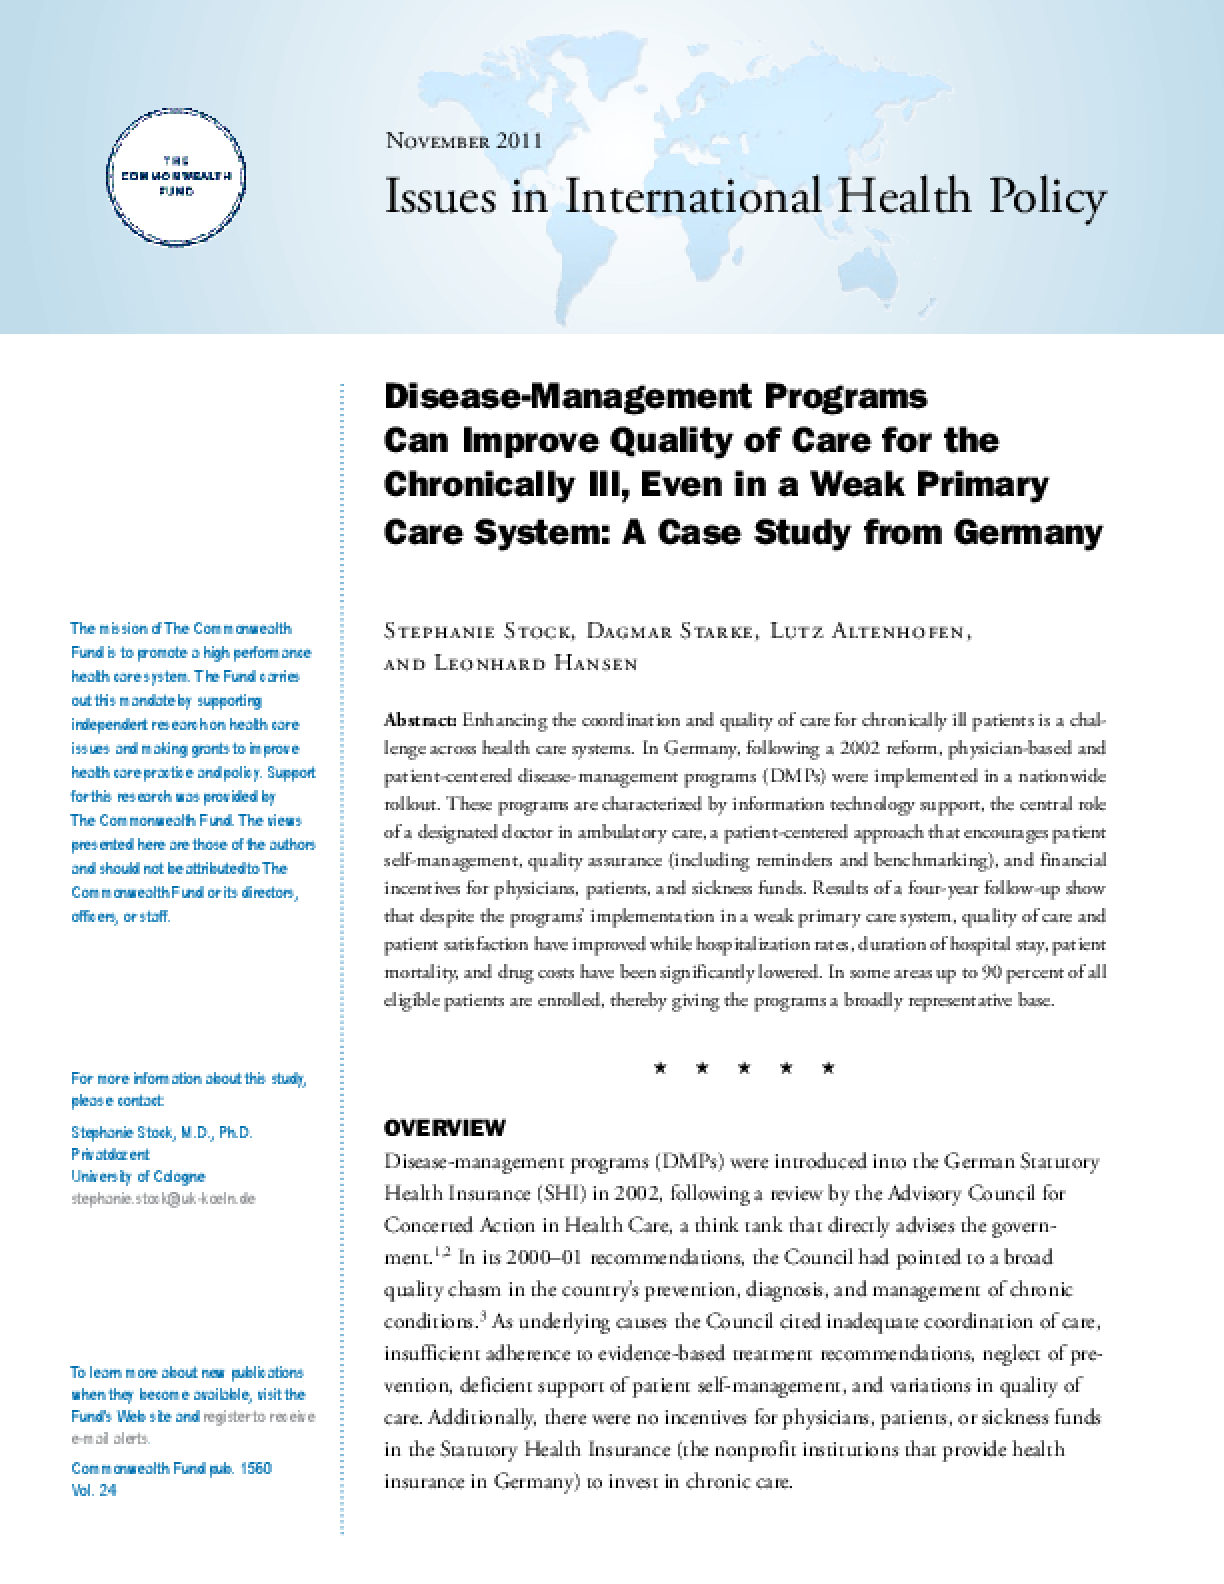 Disease-Management Programs Can Improve Quality of Care for the Chronically Ill, Even in a Weak Primary Care System: A Case Study From Germany